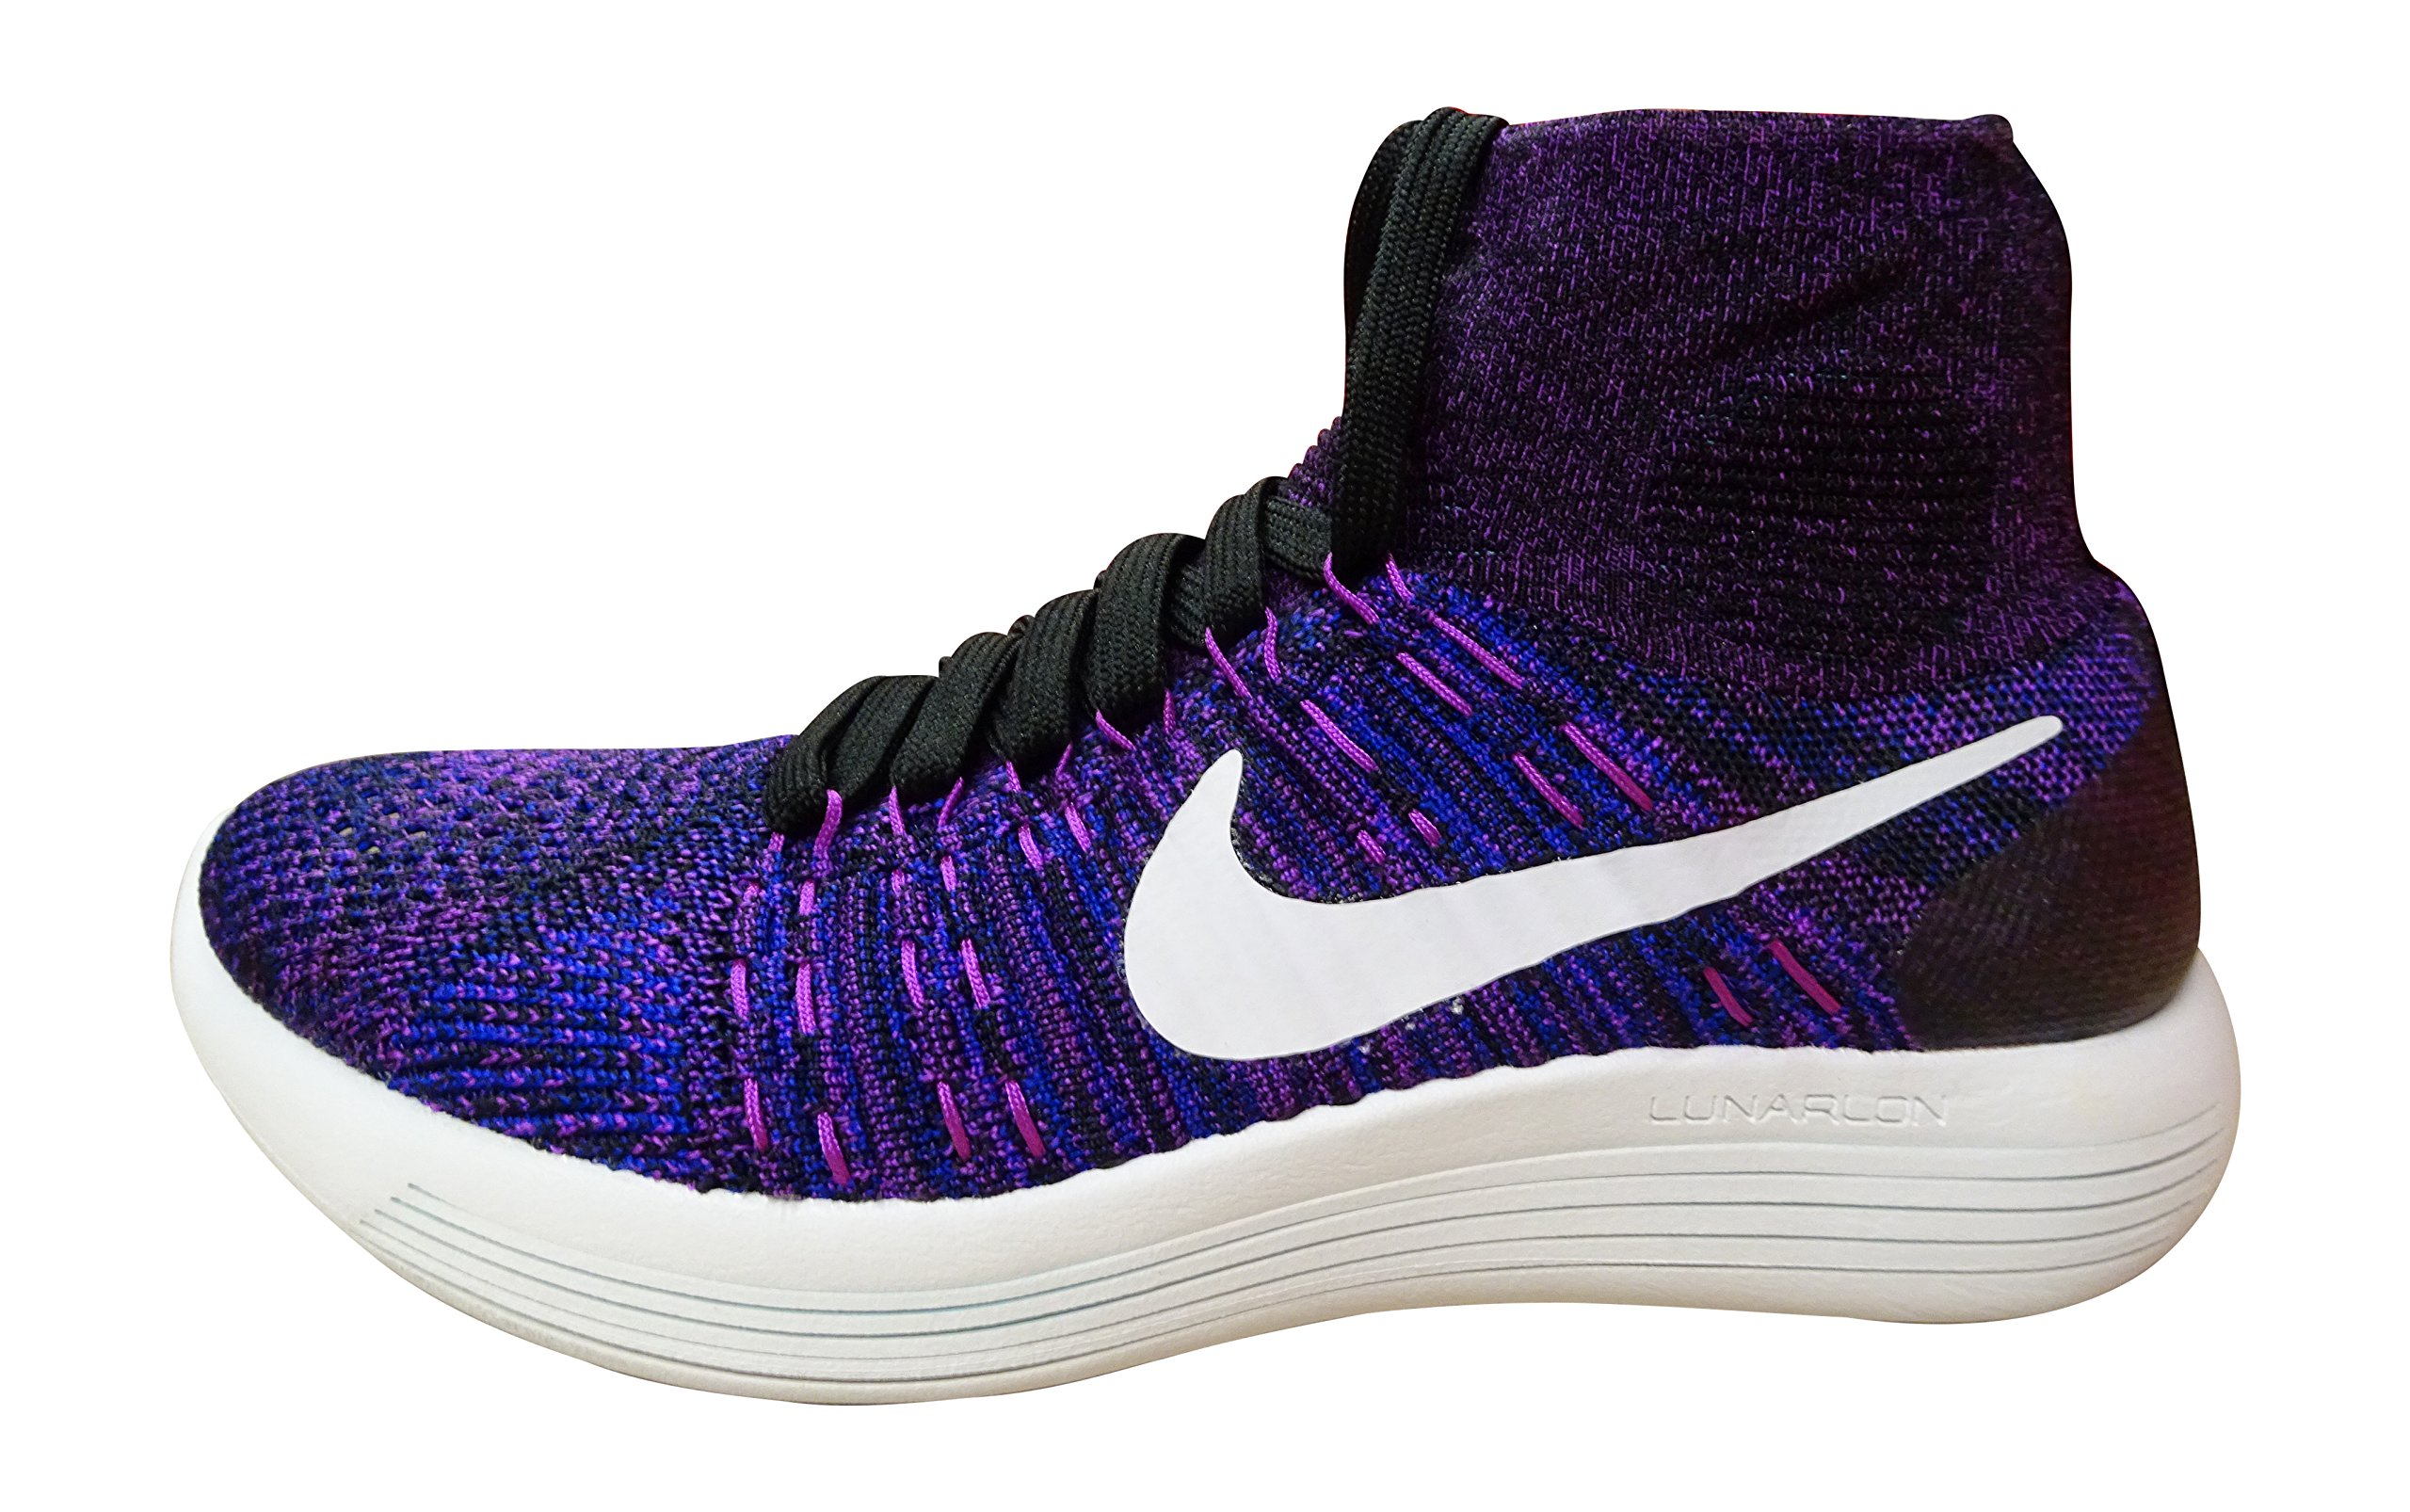 a354b959b74ca Galleon - NIKE Womens Lunarepic Flyknit Running Trainers 818677 Sneakers  Shies (US 8